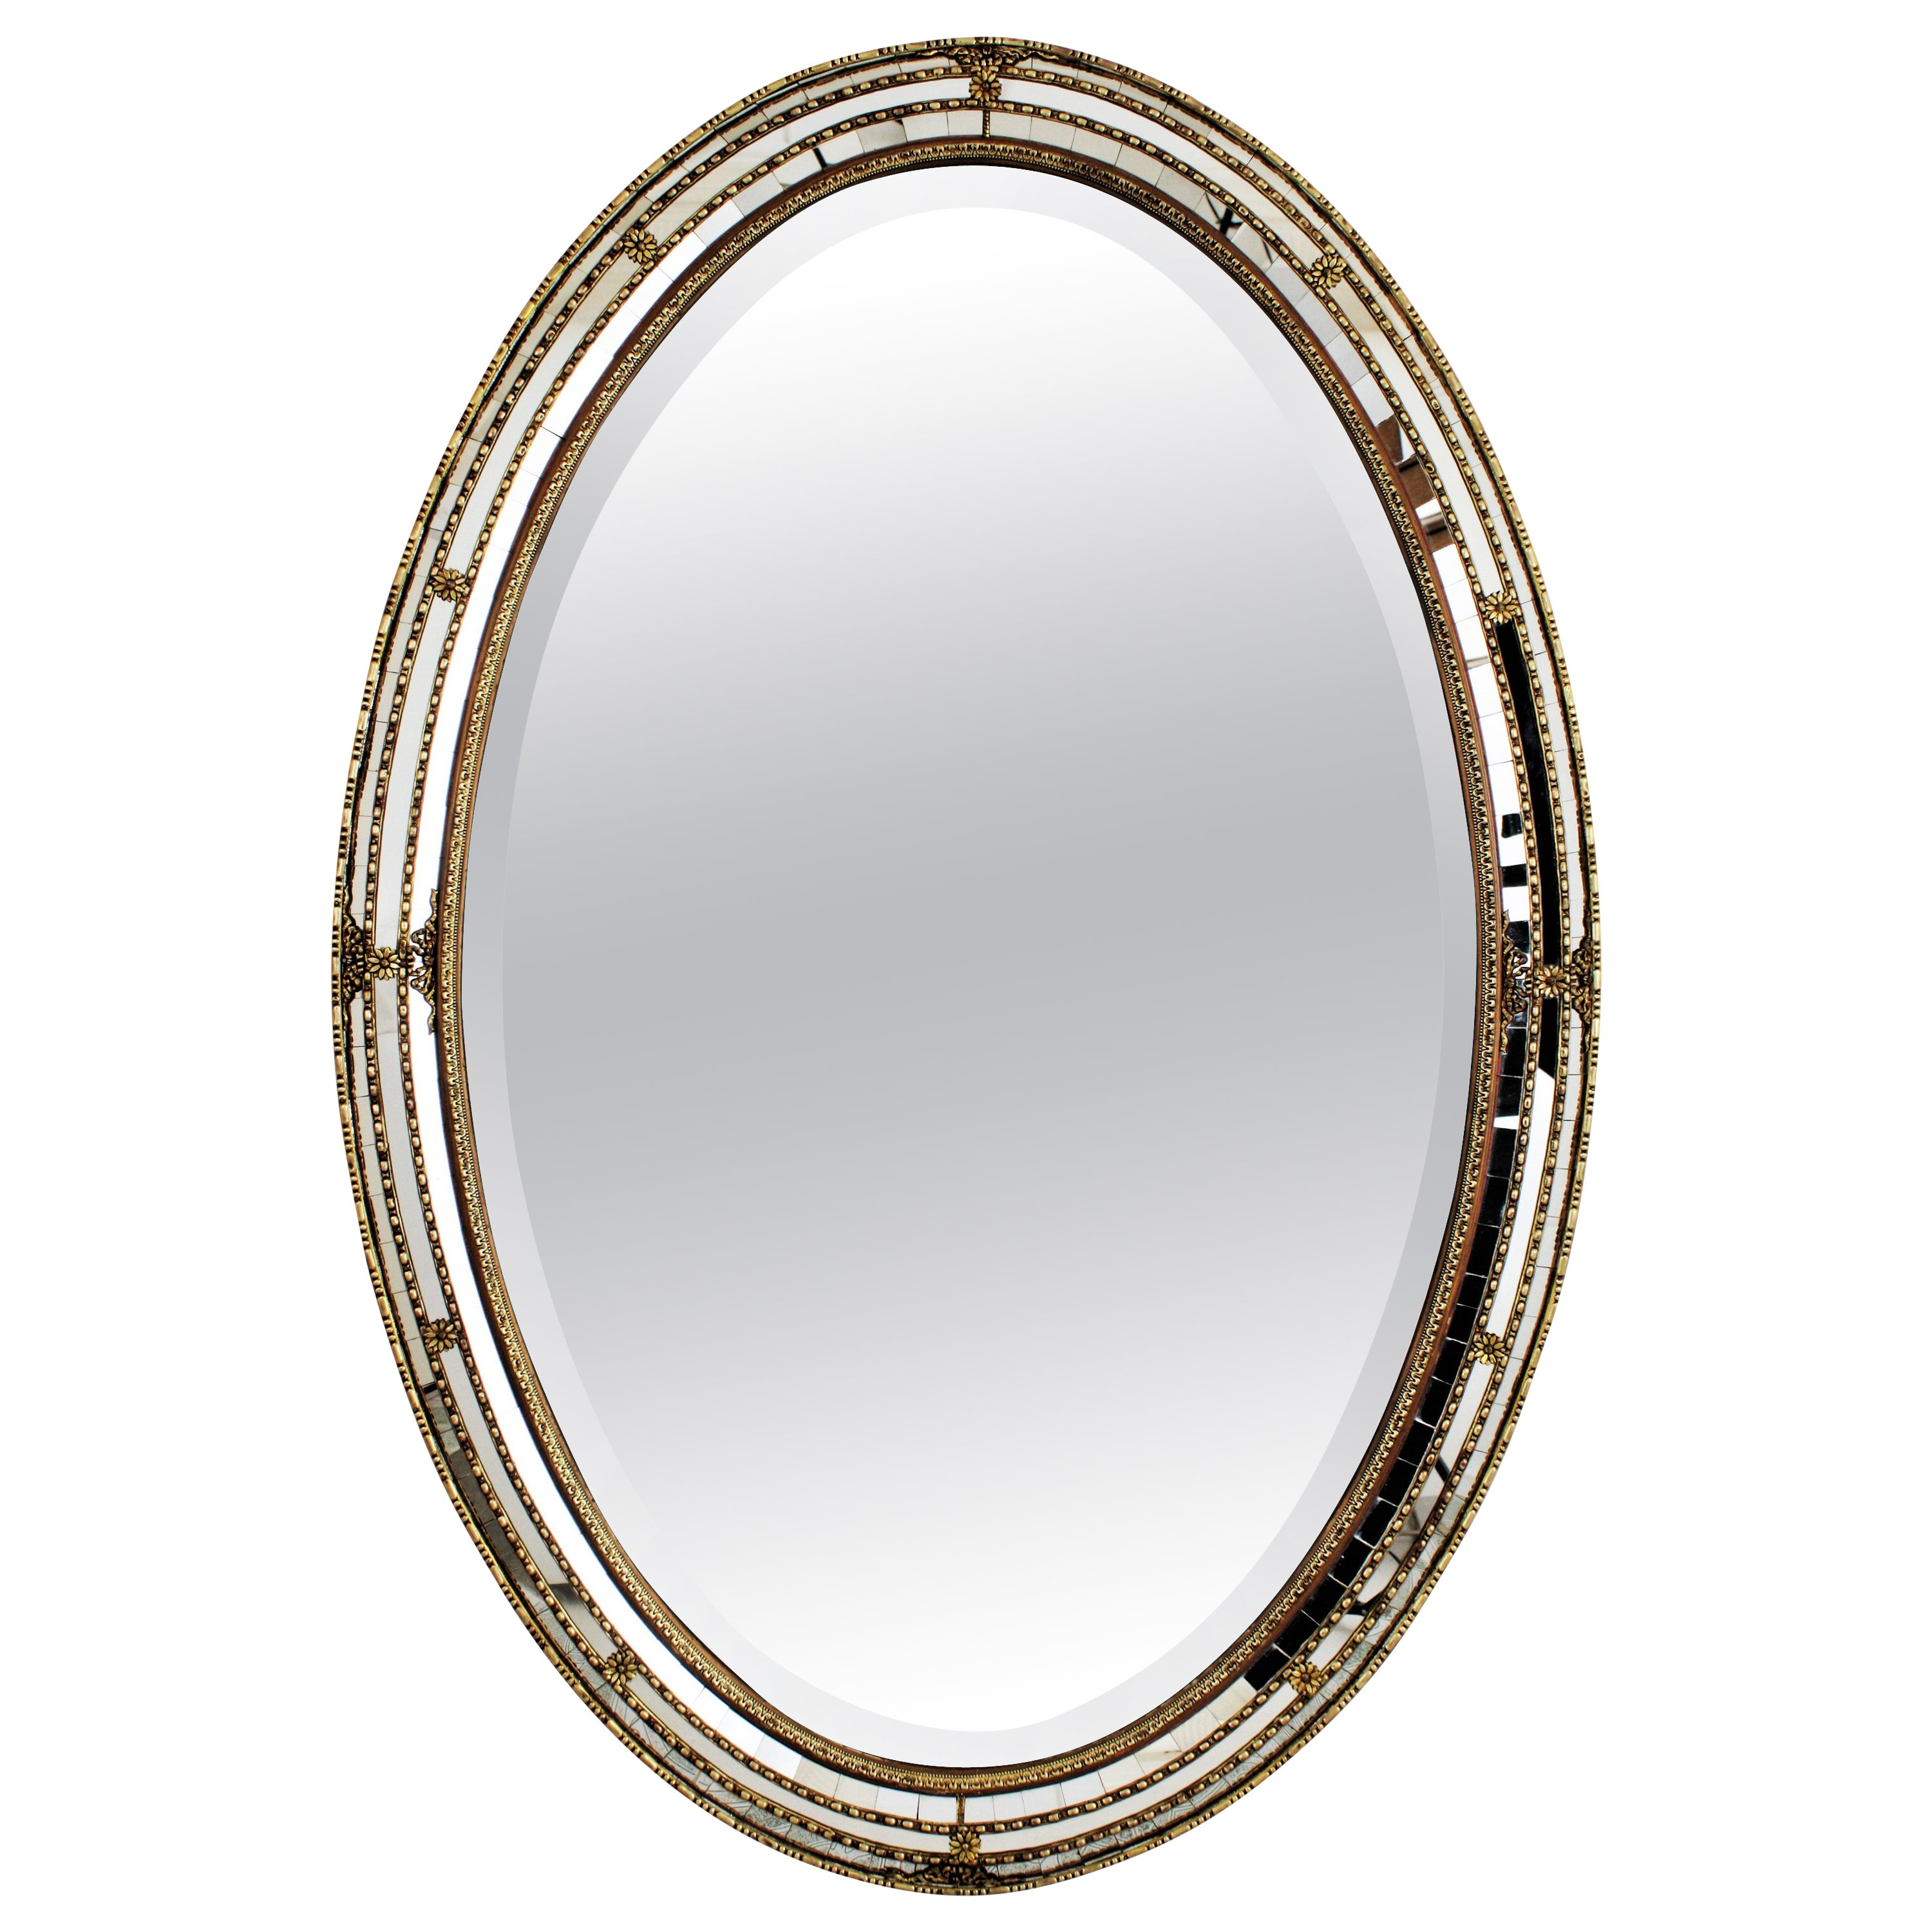 Spanish Venetian Style Oval Mirror with Beveled Glass and Brass Accents, 1950s